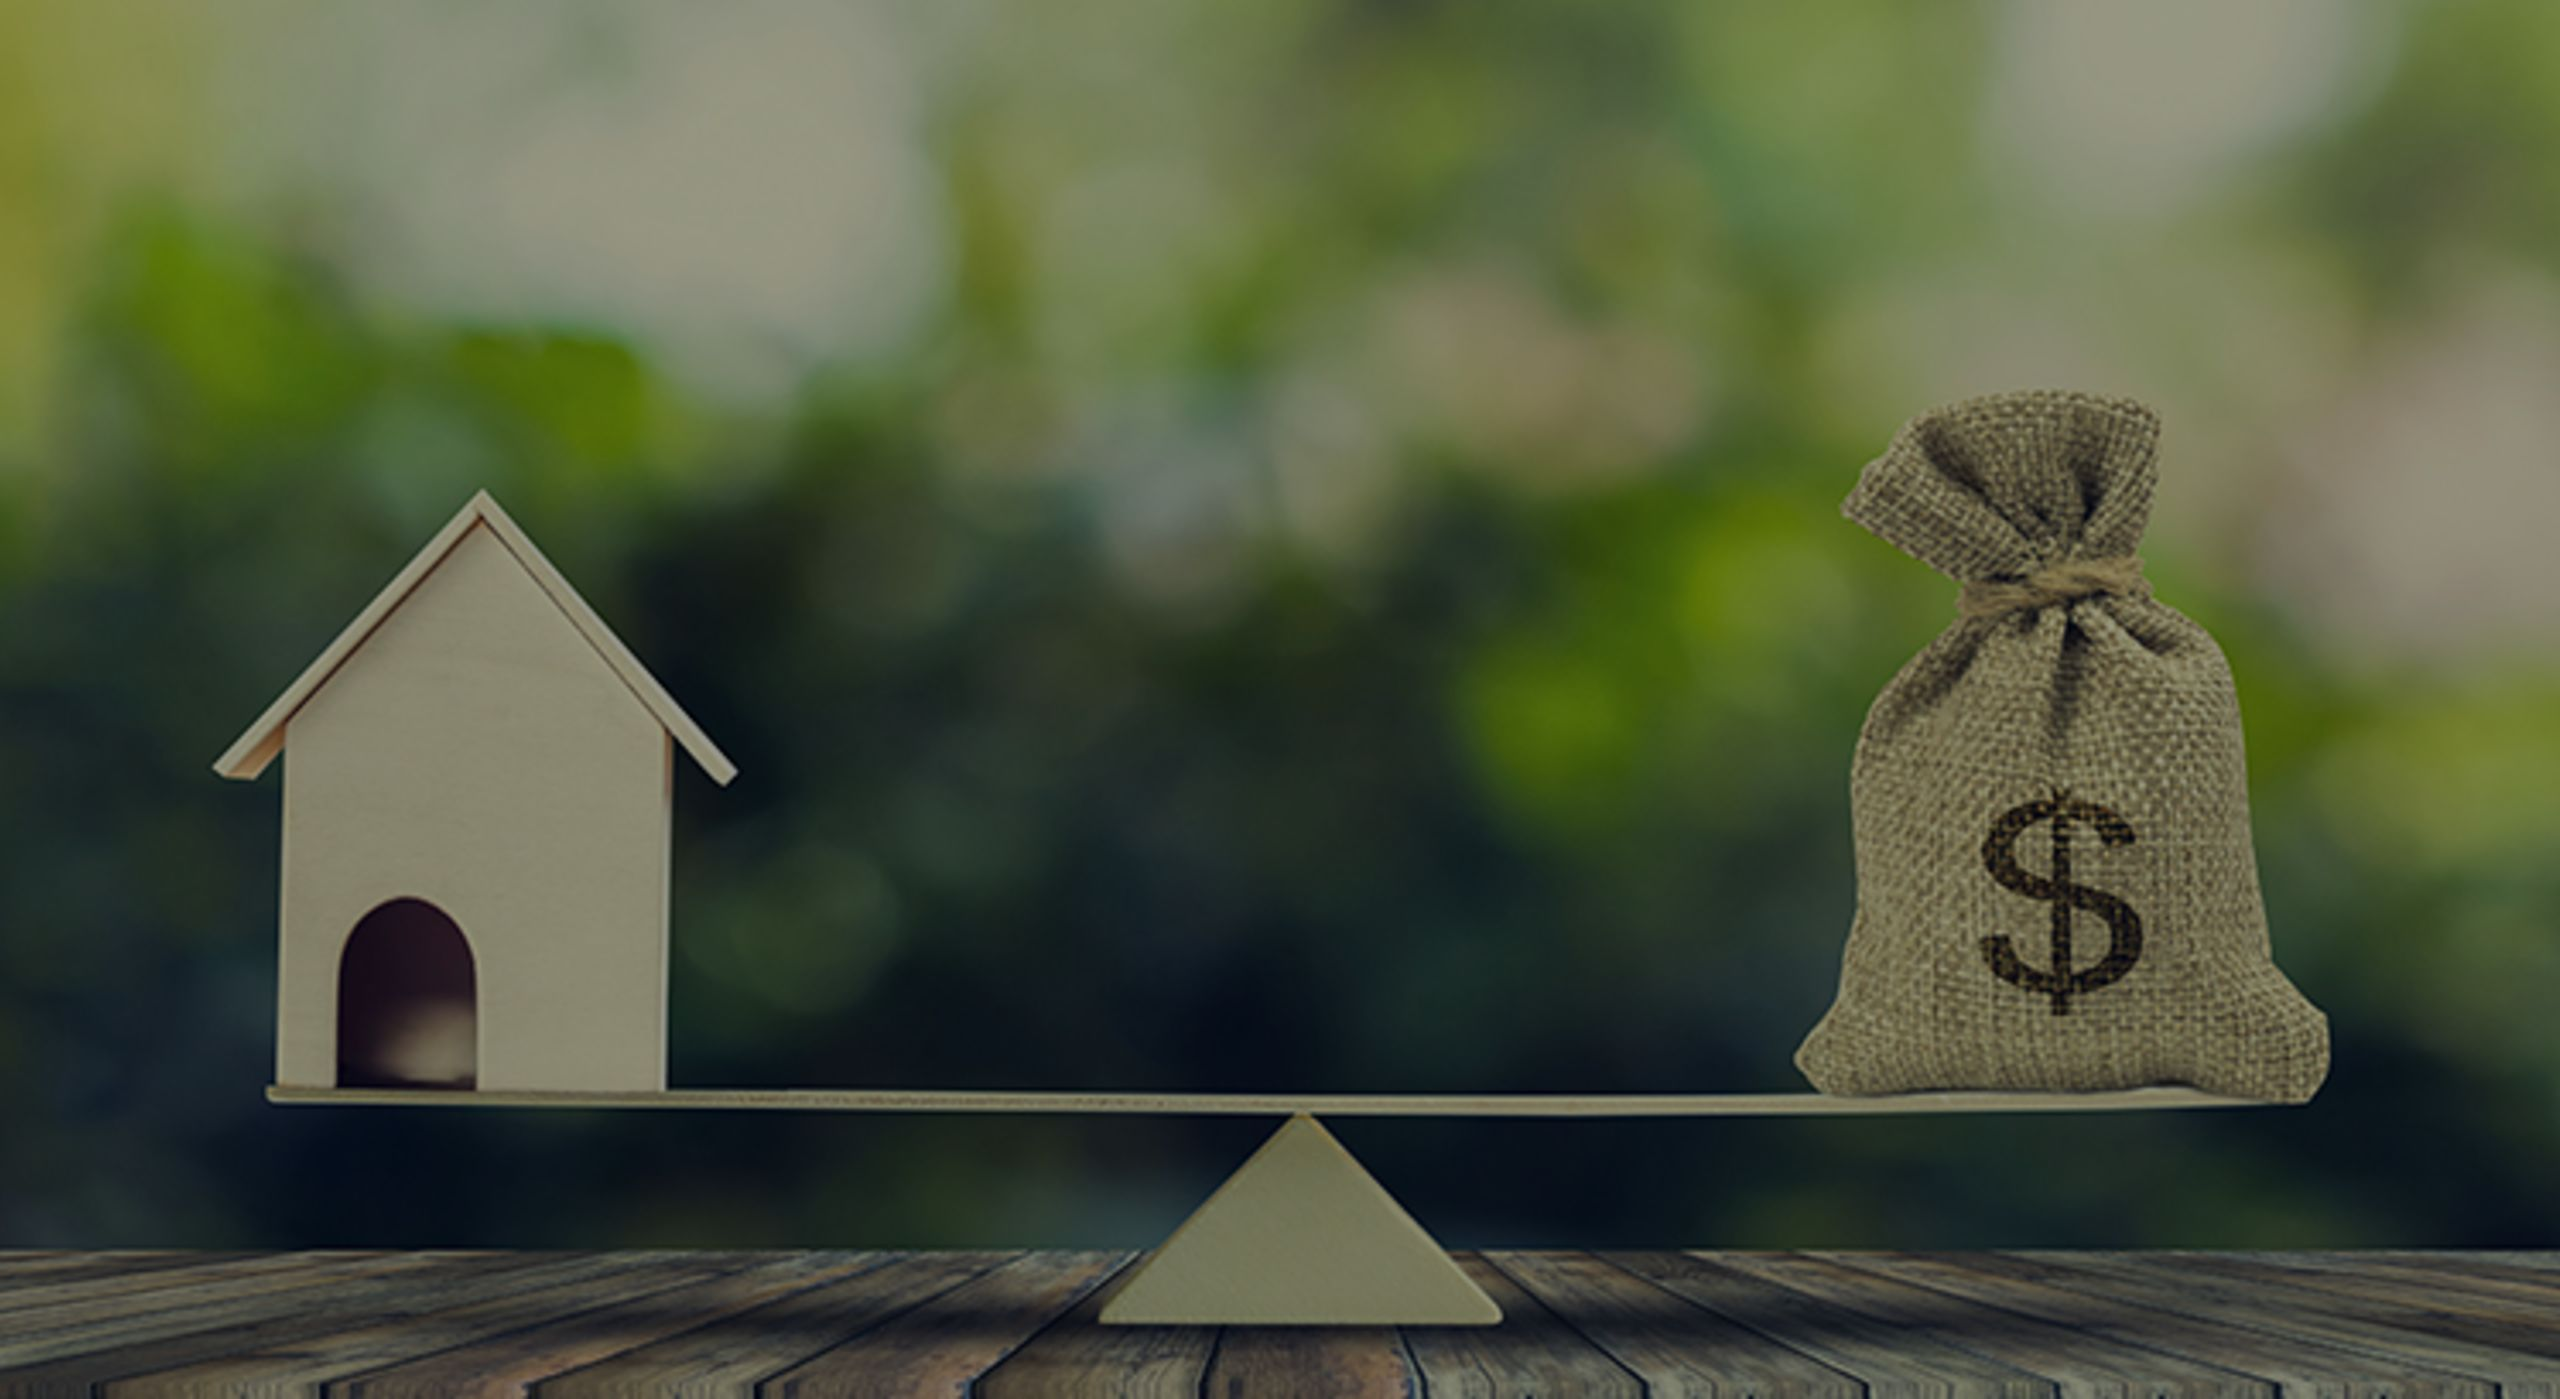 SELL MY HOUSE IN MD | Is Now a Good Time to Refinance My Home?